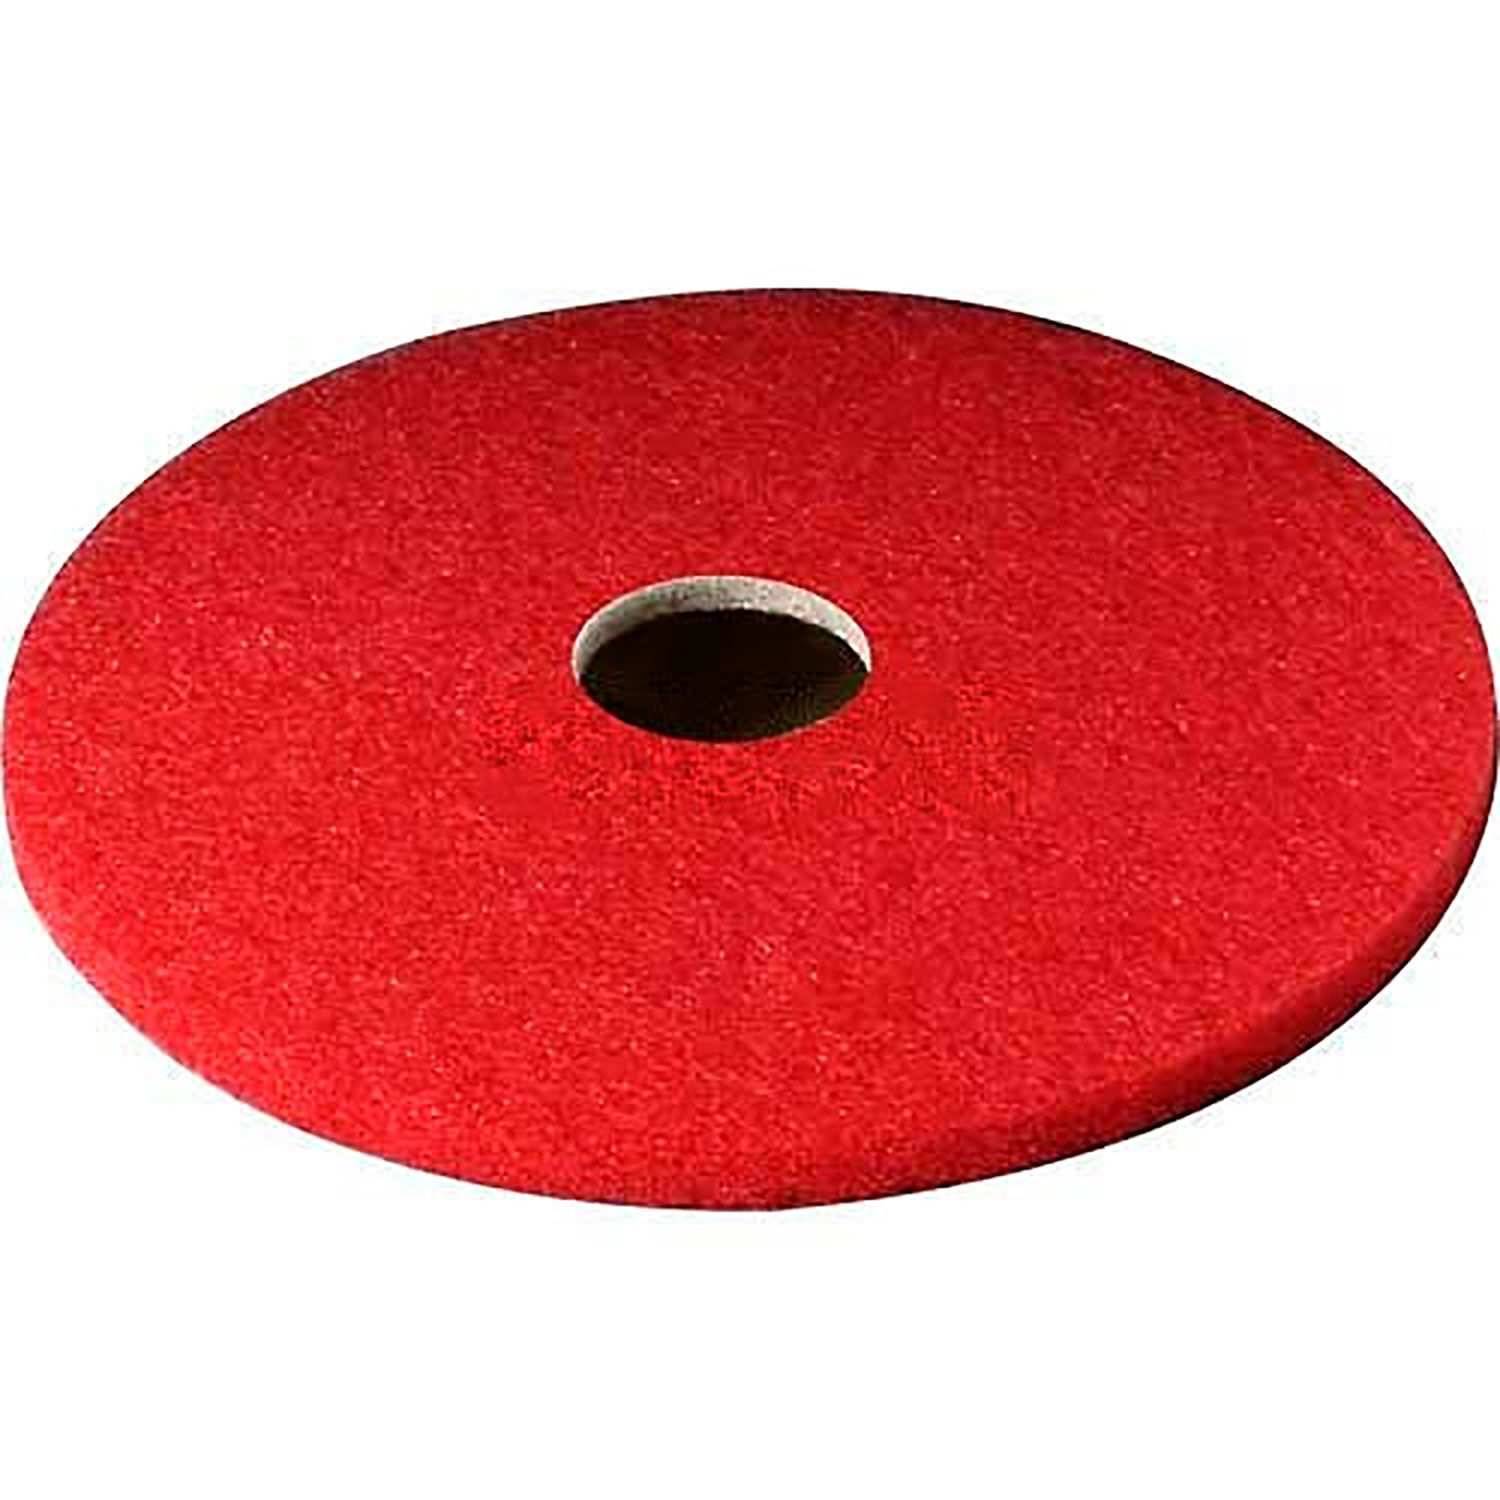 "3M™ Buffer Pad 5100, 18"", 5/Case, Red, Lot of 1"